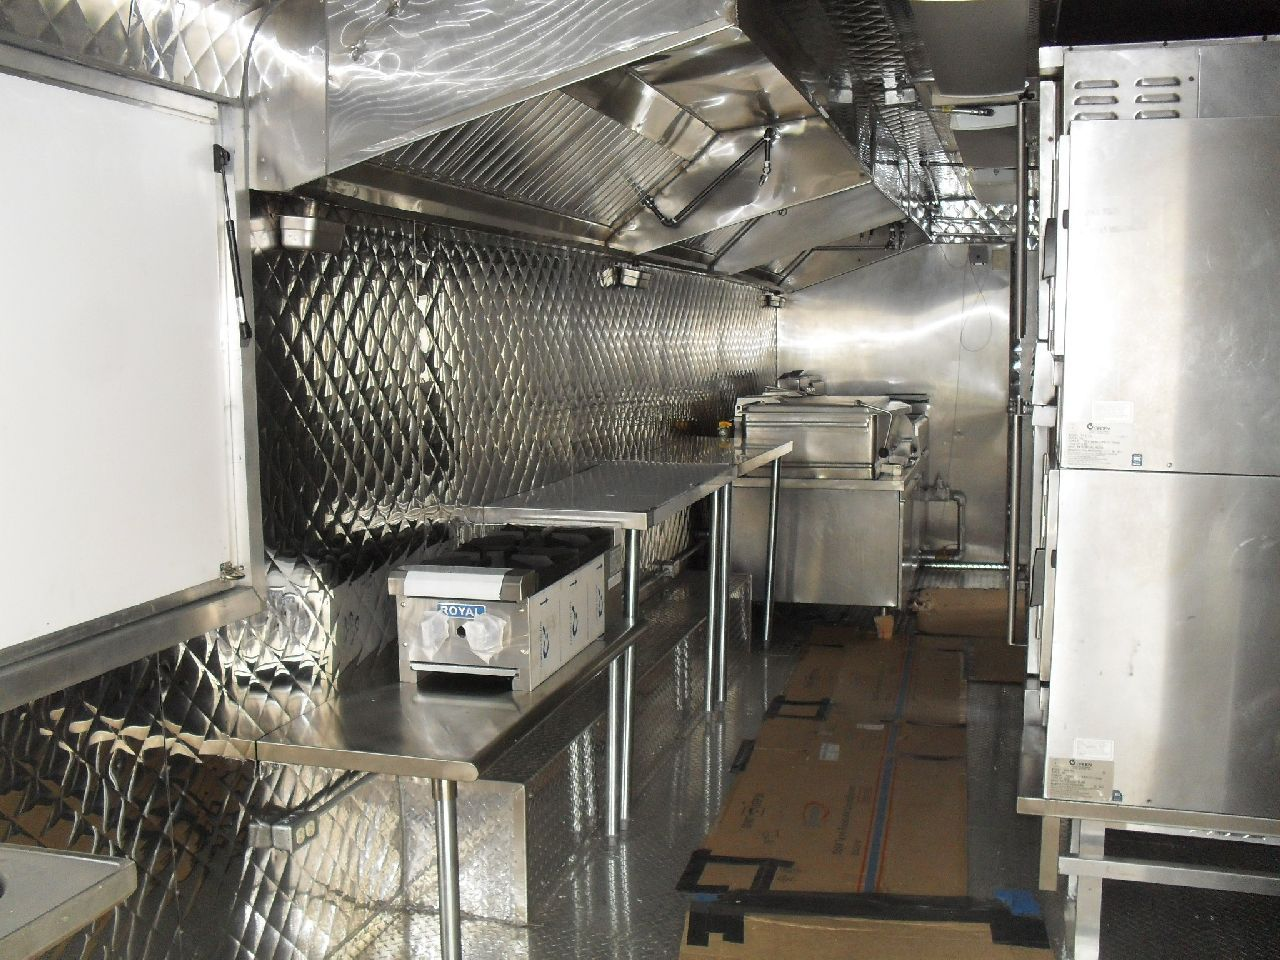 Food Trucks For Sale Near Me >> Food Truck Kitchen Design | Stainless Steel Kitchen Interior for a Mobile Food Truck is Custom ...